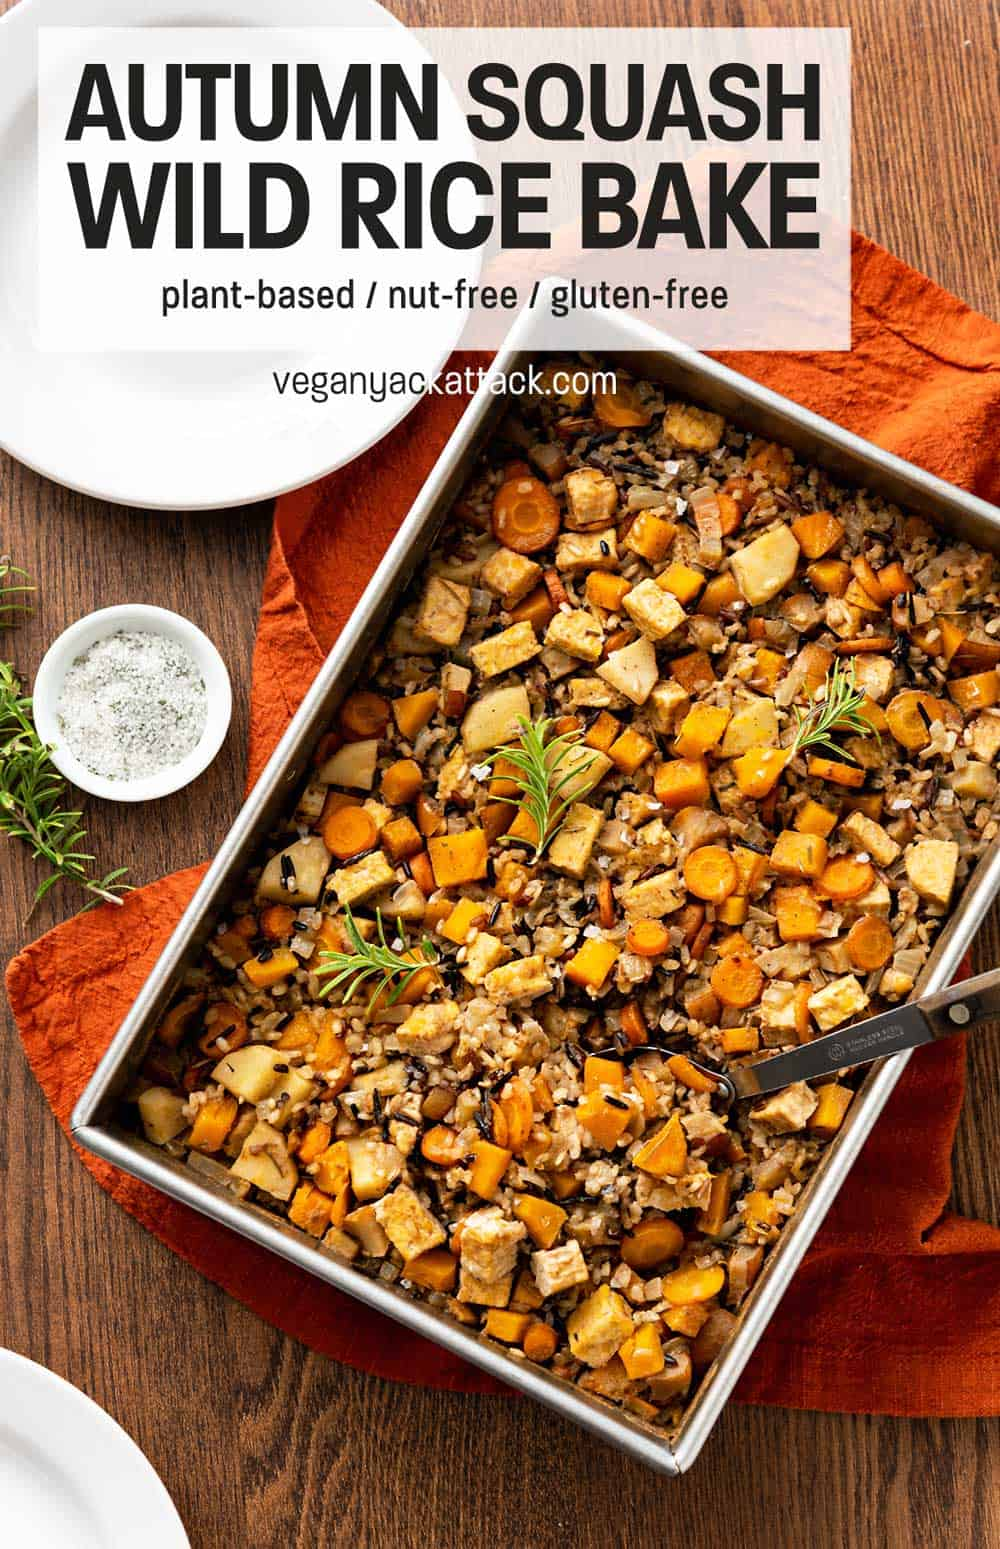 Large baking pan of squash wild rice bake on a brown wood table with rust-colored linen